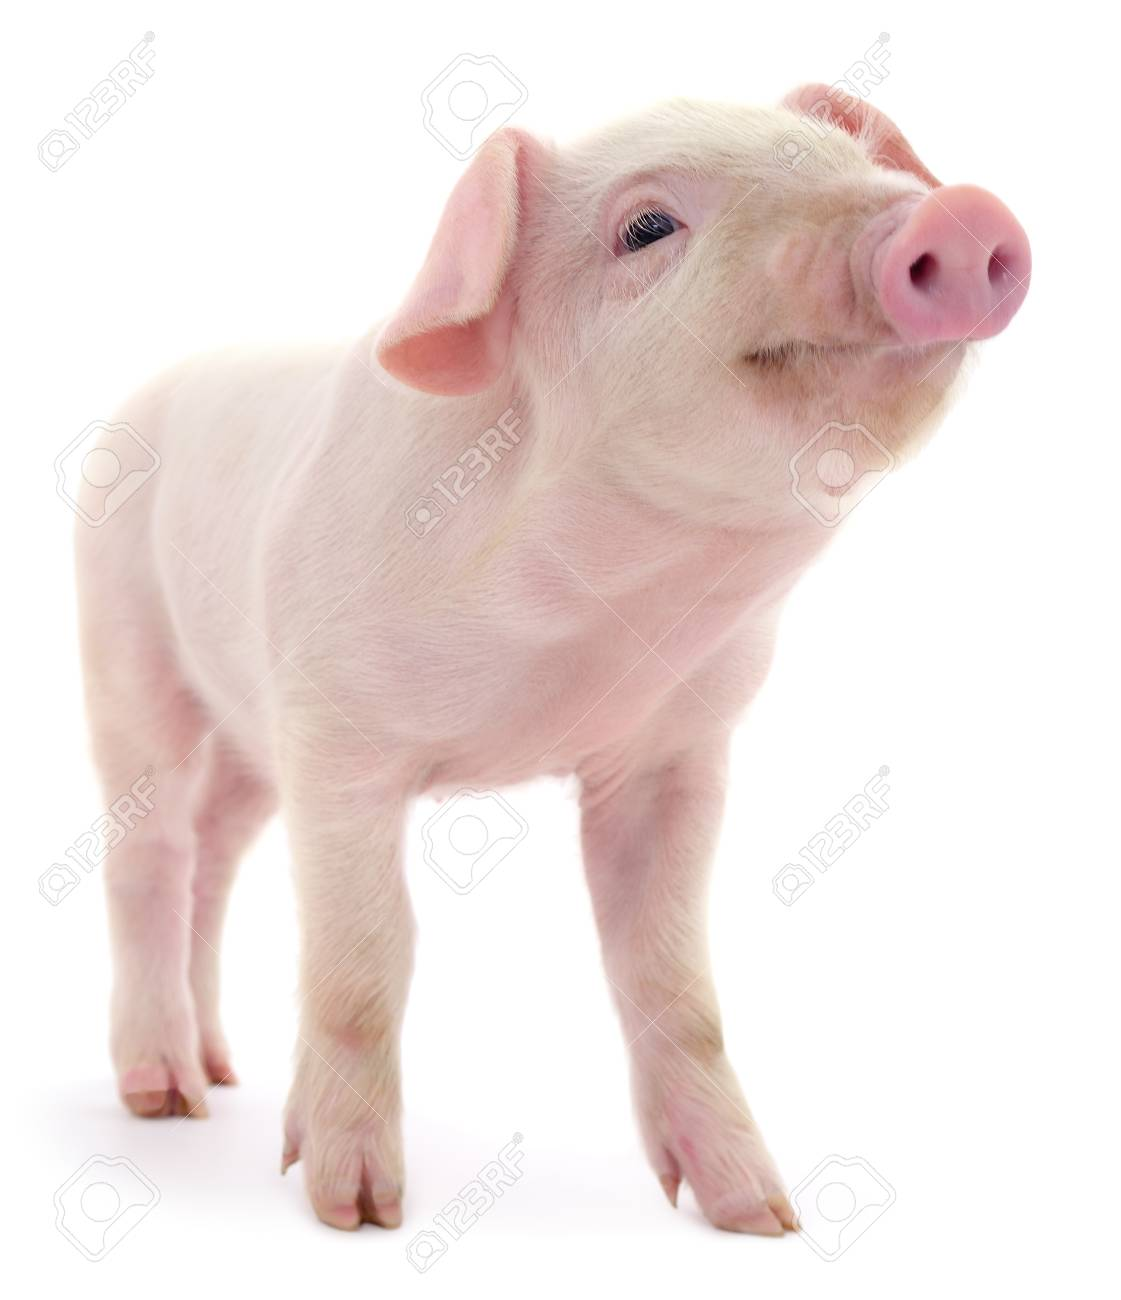 Pig who is represented on a white background - 88183567